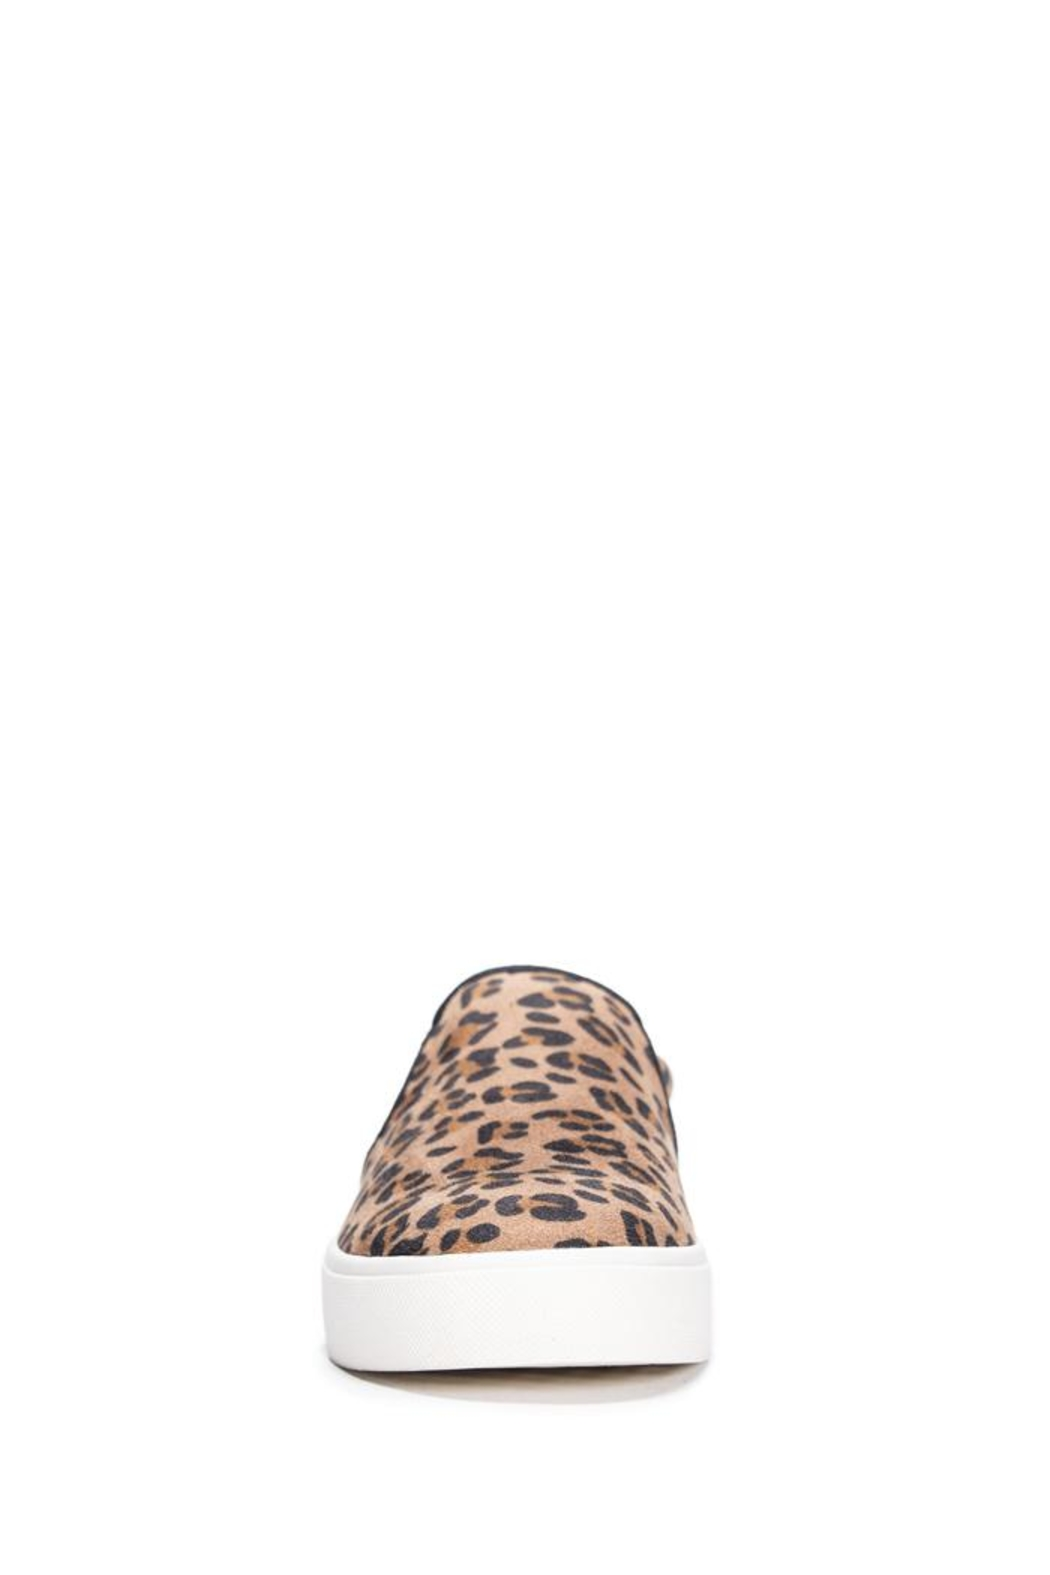 Dirty Laundry Emory Cheetah Slip-Ons - Front Full Image